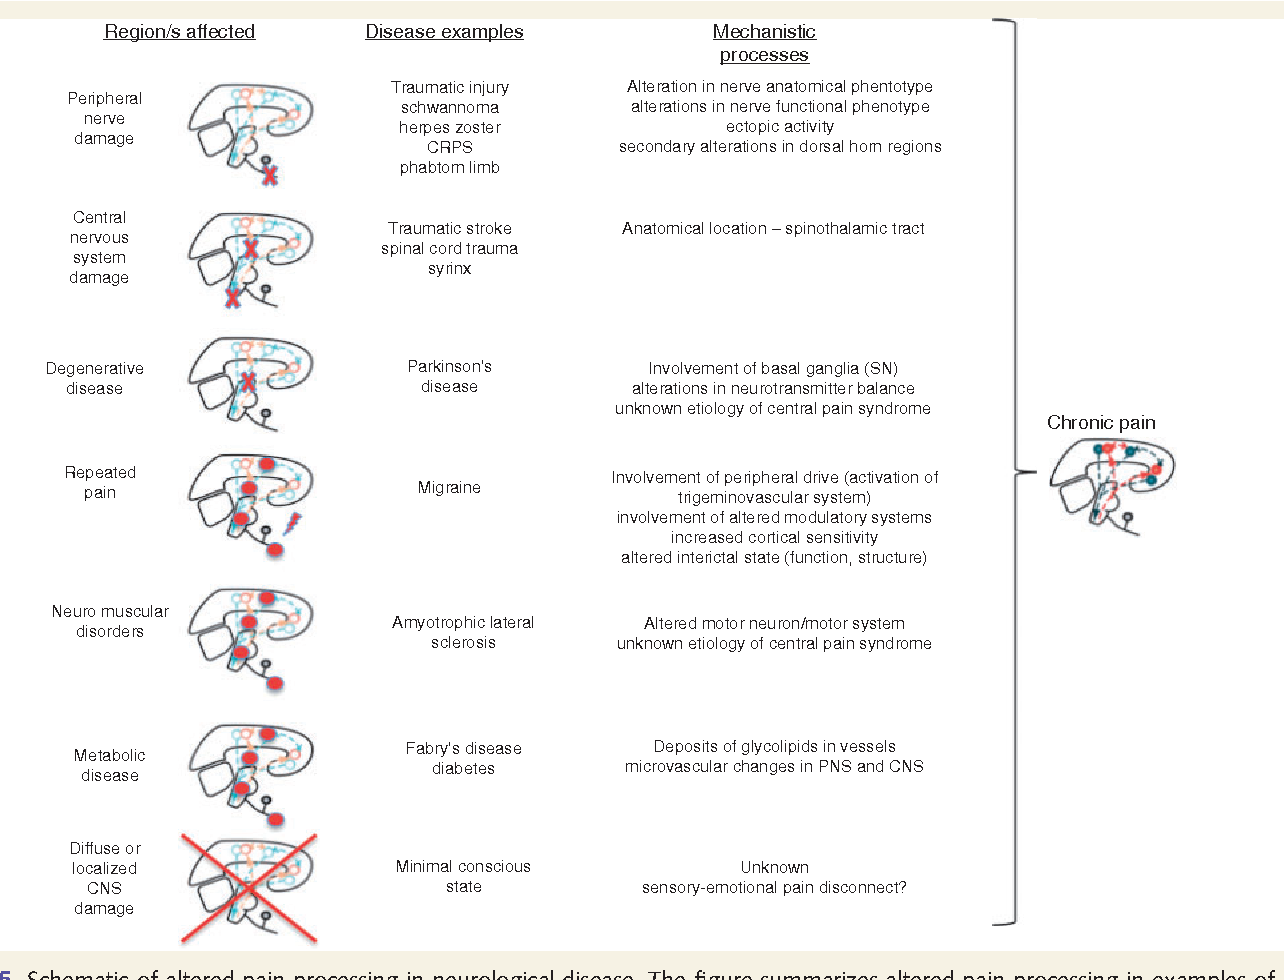 Figure 5 From Pain And Neurological Diseases Disease Prevalence Of